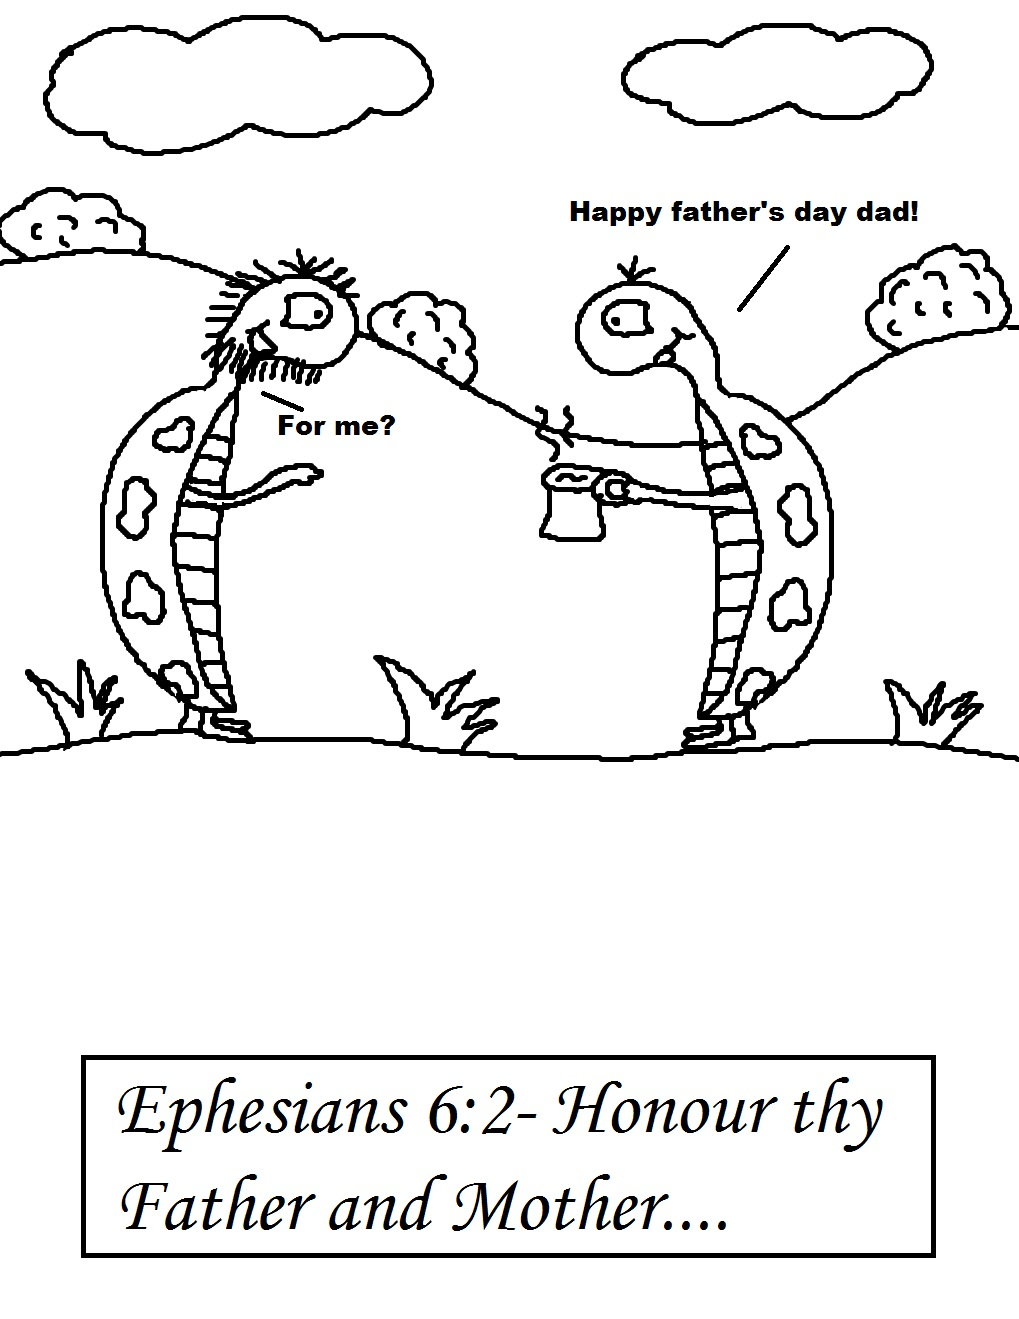 Childrens fathers day coloring pages - Father S Day Sunday School Lesson